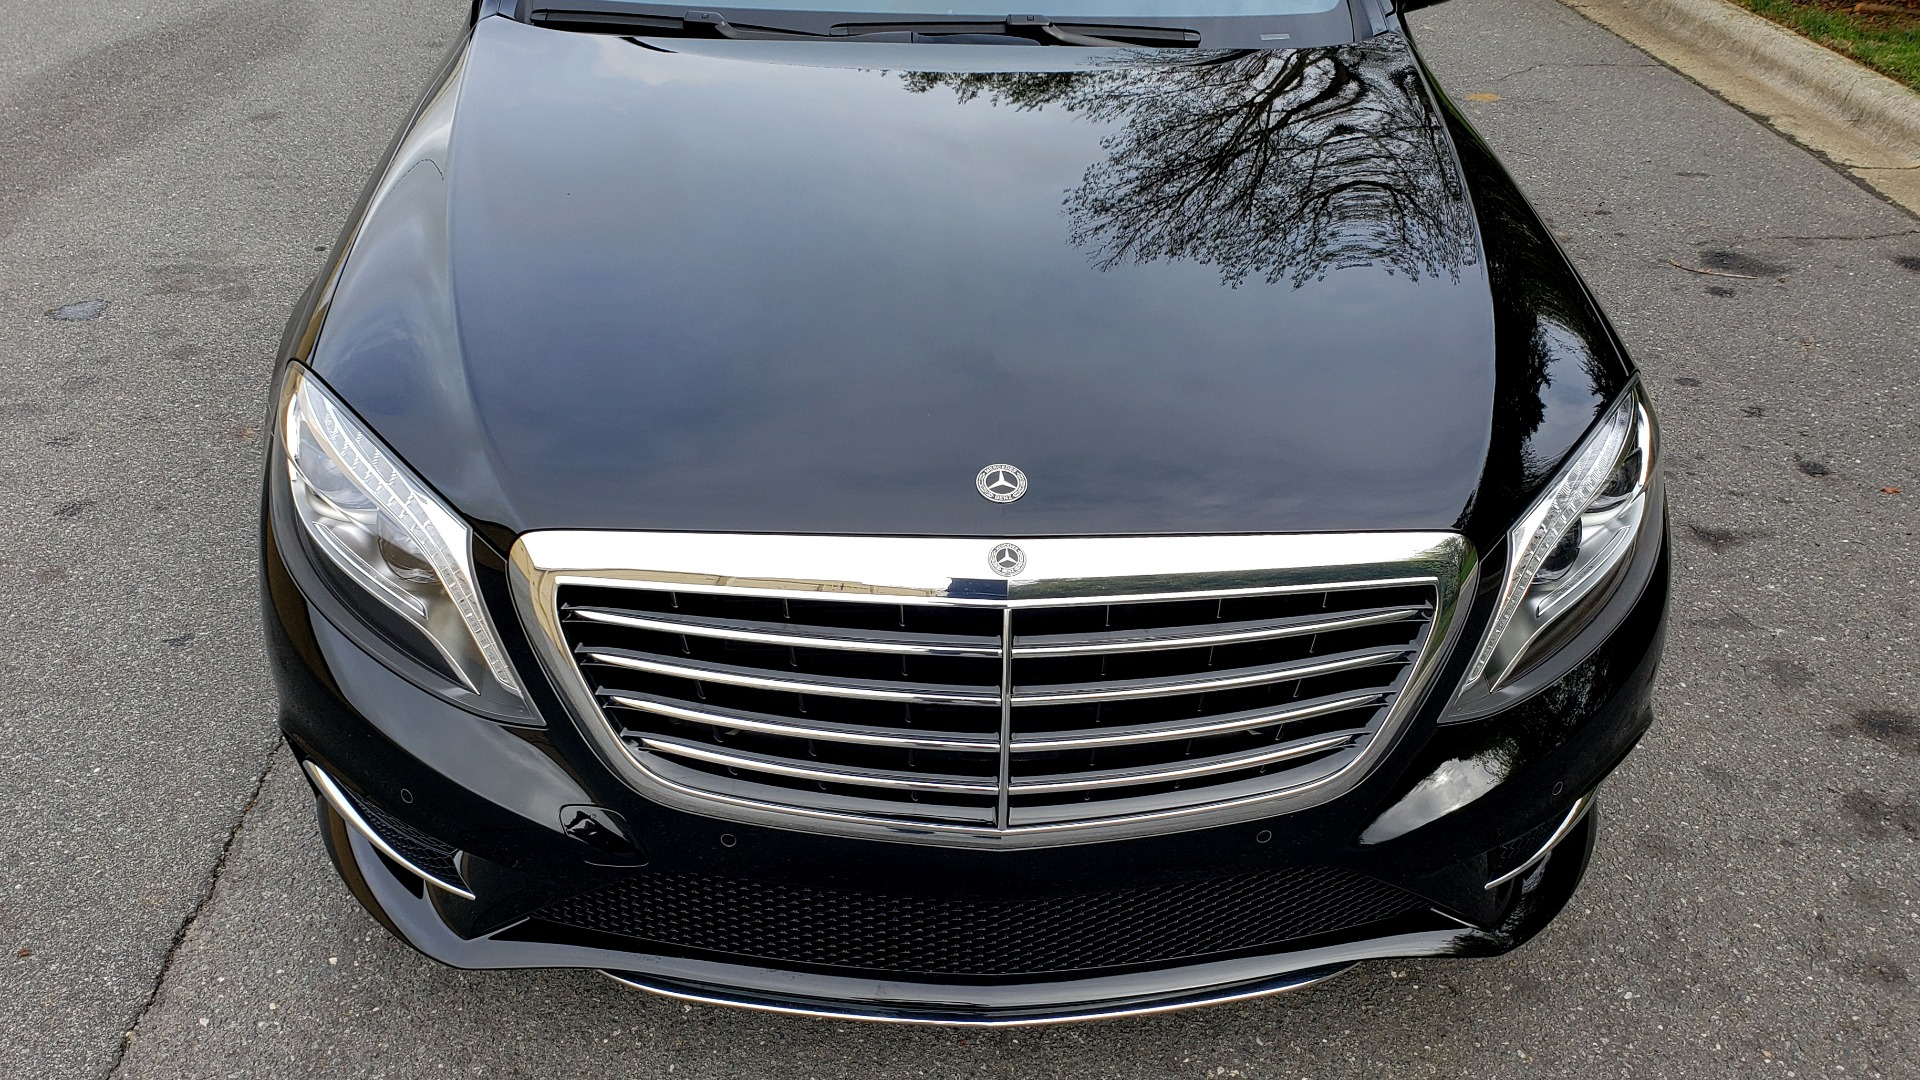 Used 2017 Mercedes-Benz S-CLASS S 550 4MATIC SPORT / PREM PKG / WARMTH & COMFORT / KEYLESS-GO for sale Sold at Formula Imports in Charlotte NC 28227 15